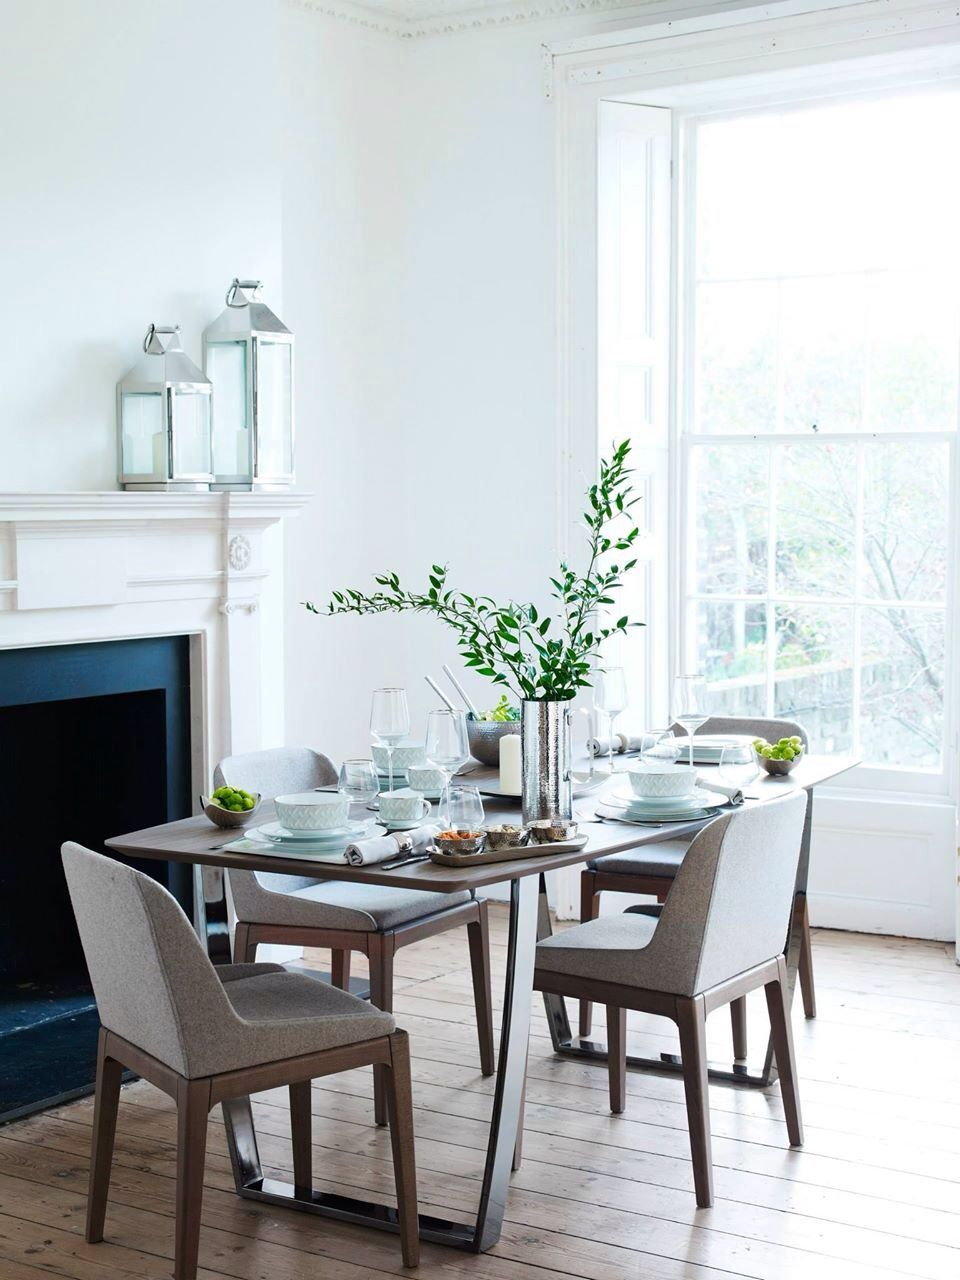 House Of Fraser Dining Room Furniture Mesmerizing Ss14 #hofathome  Ss14 Hofathome  Pinterest  Ranges House And Room Decorating Inspiration